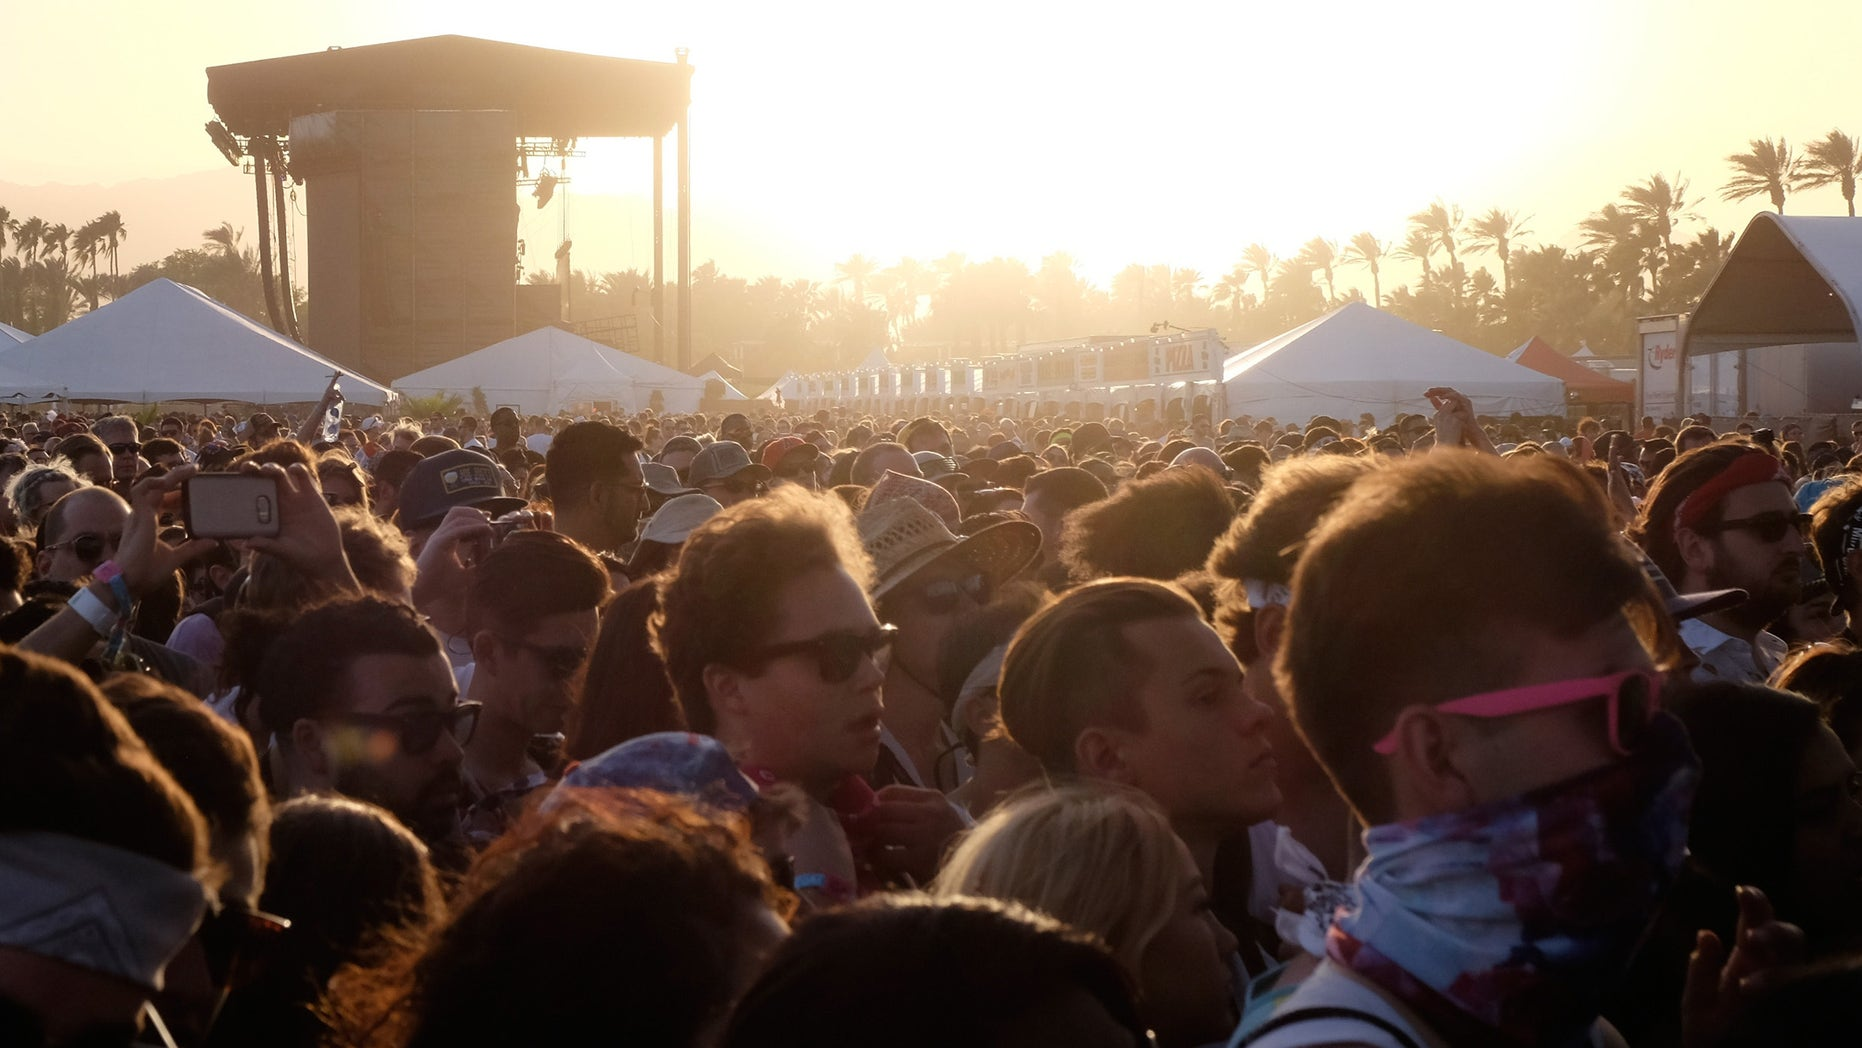 INDIO, CA - APRIL 15:  Festival goers at sunset during day 1 of the 2016 Coachella Valley Music & Arts Festival Weekend 1 at the Empire Polo Club on April 15, 2016 in Indio, California.  (Photo by Frazer Harrison/Getty Images for Coachella)